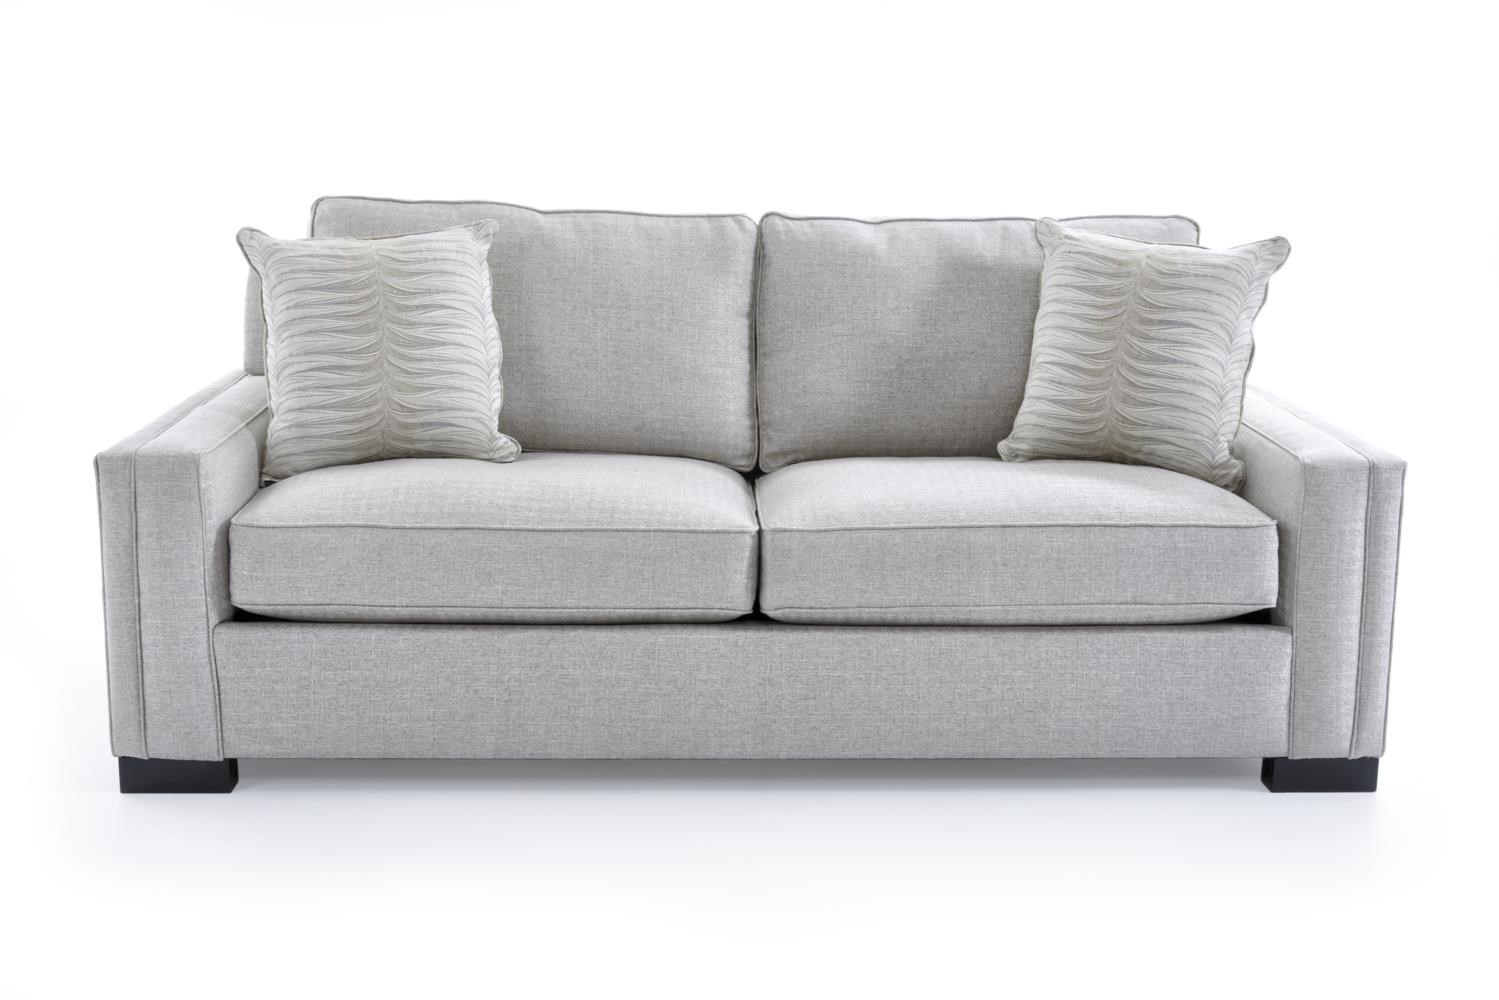 sleeper sofa miami fl how to clean fabric stains at home  thesofa